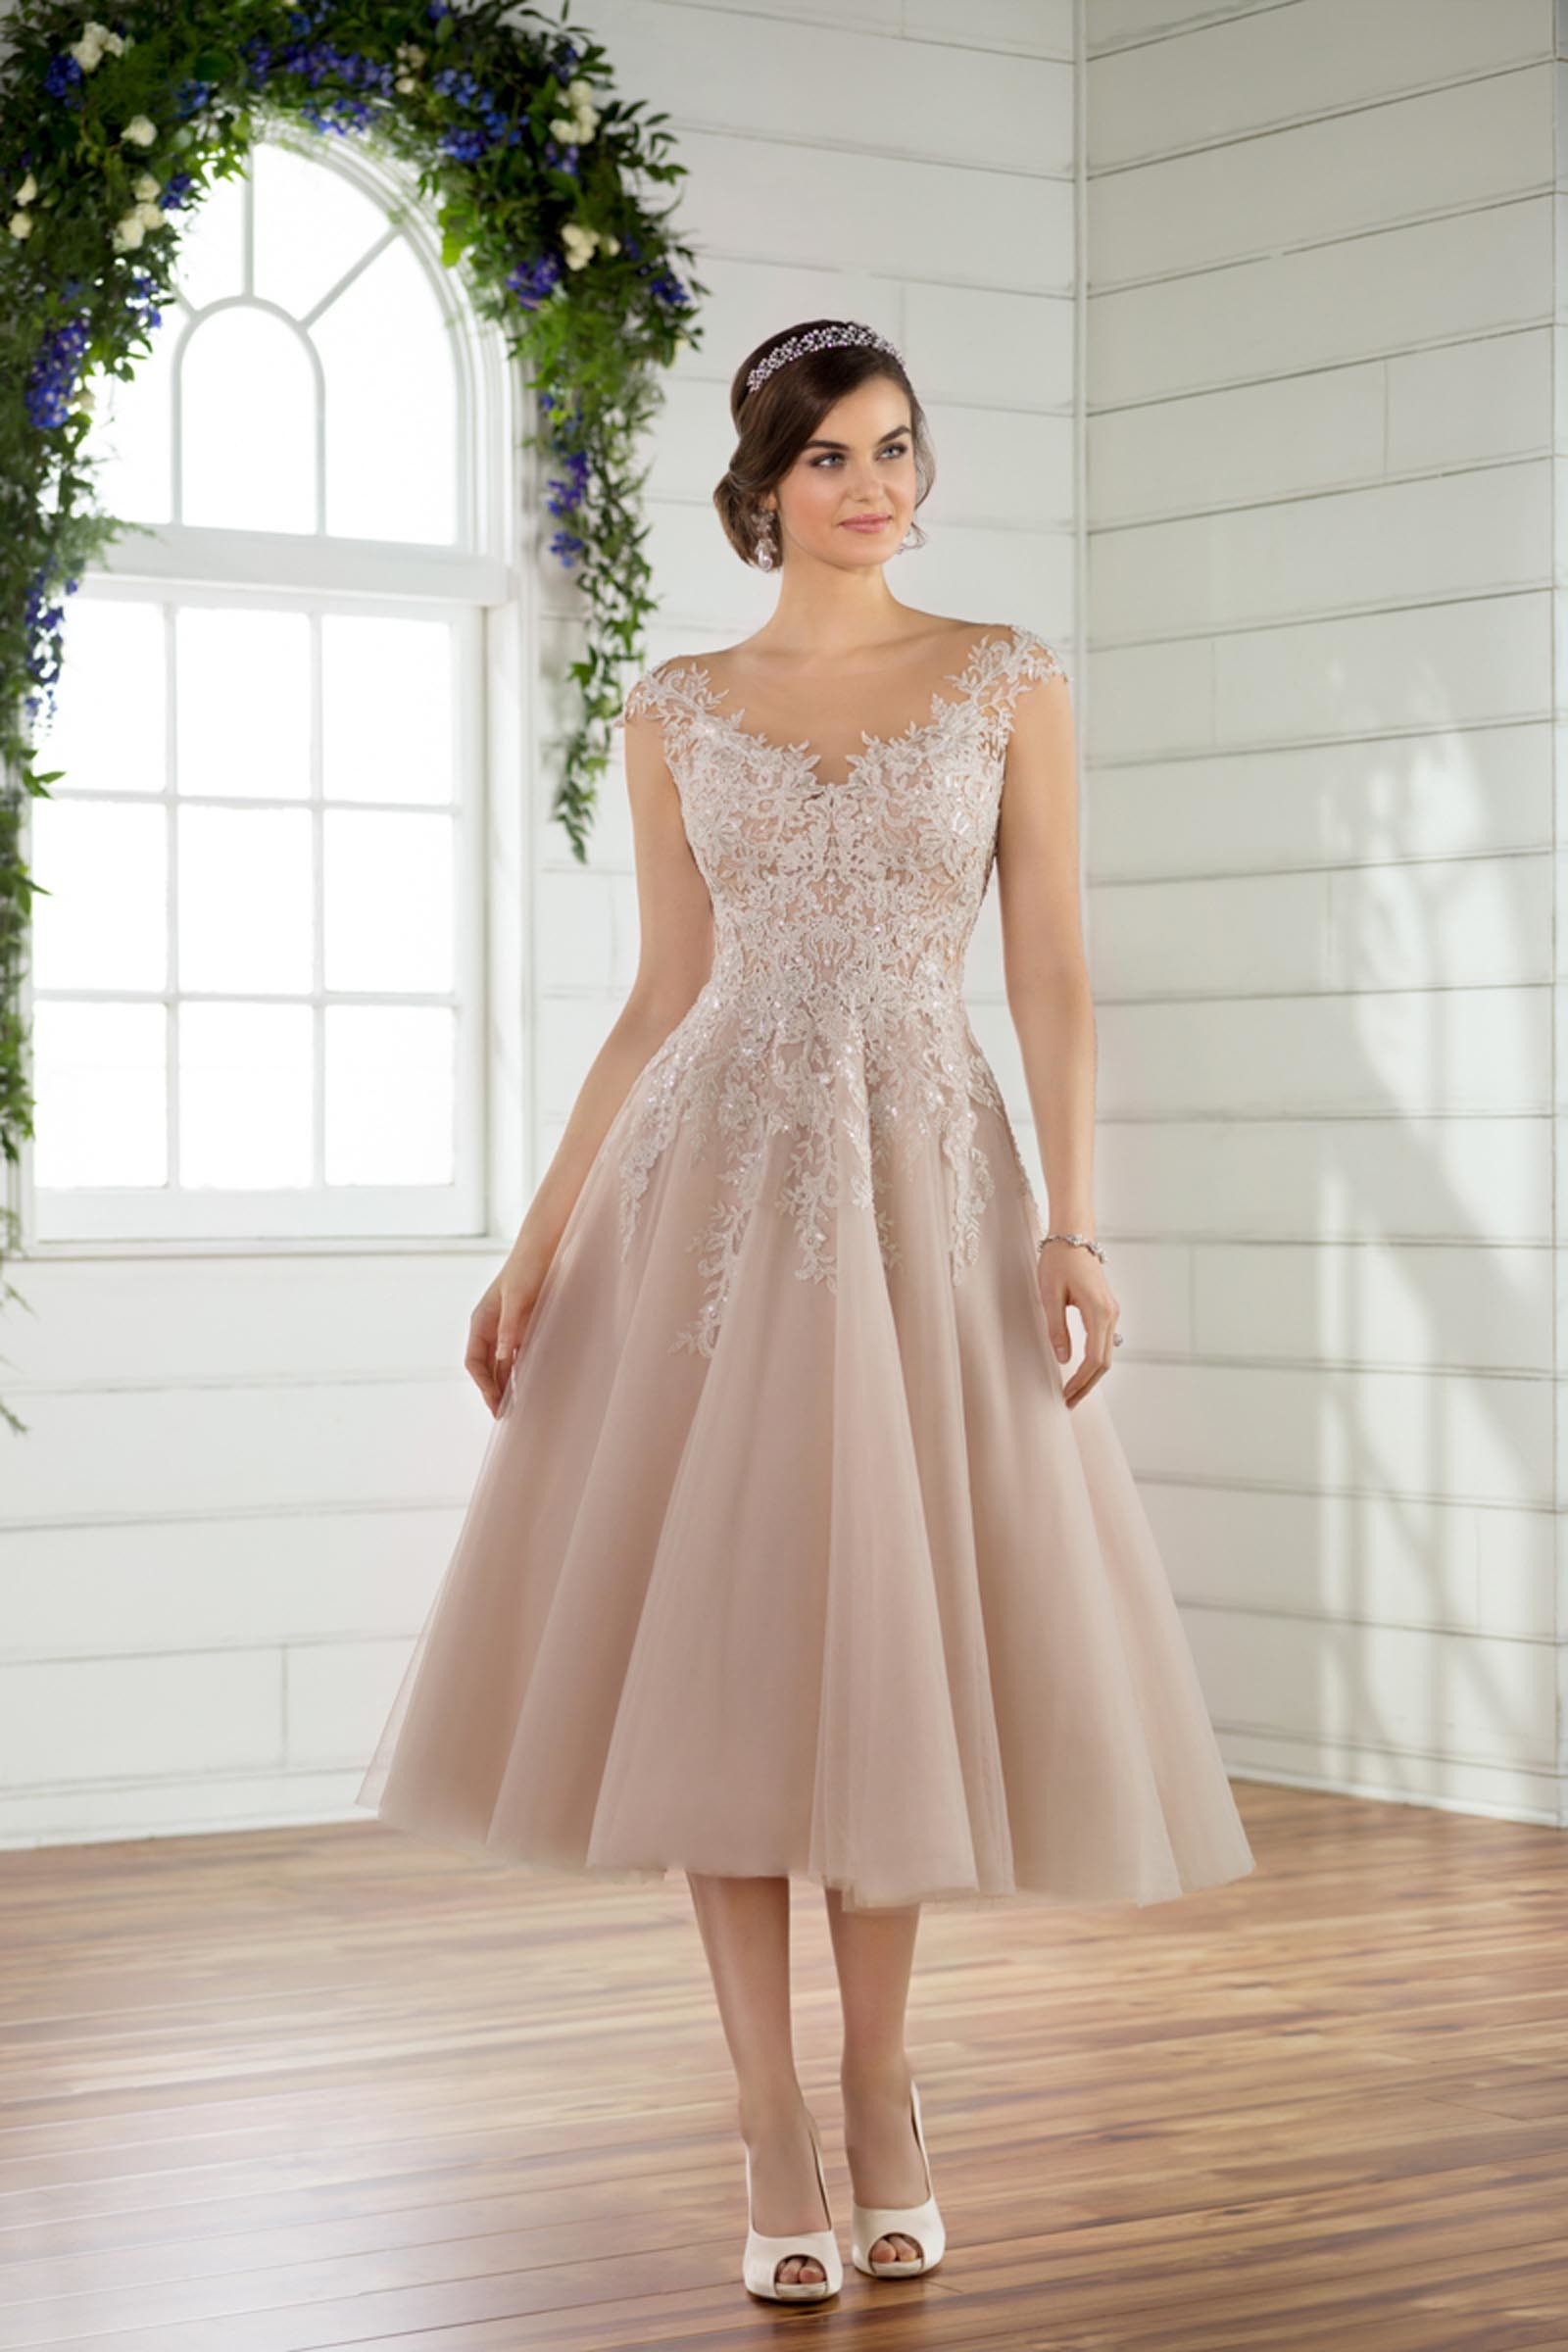 modernes Brautkleid in Rosa